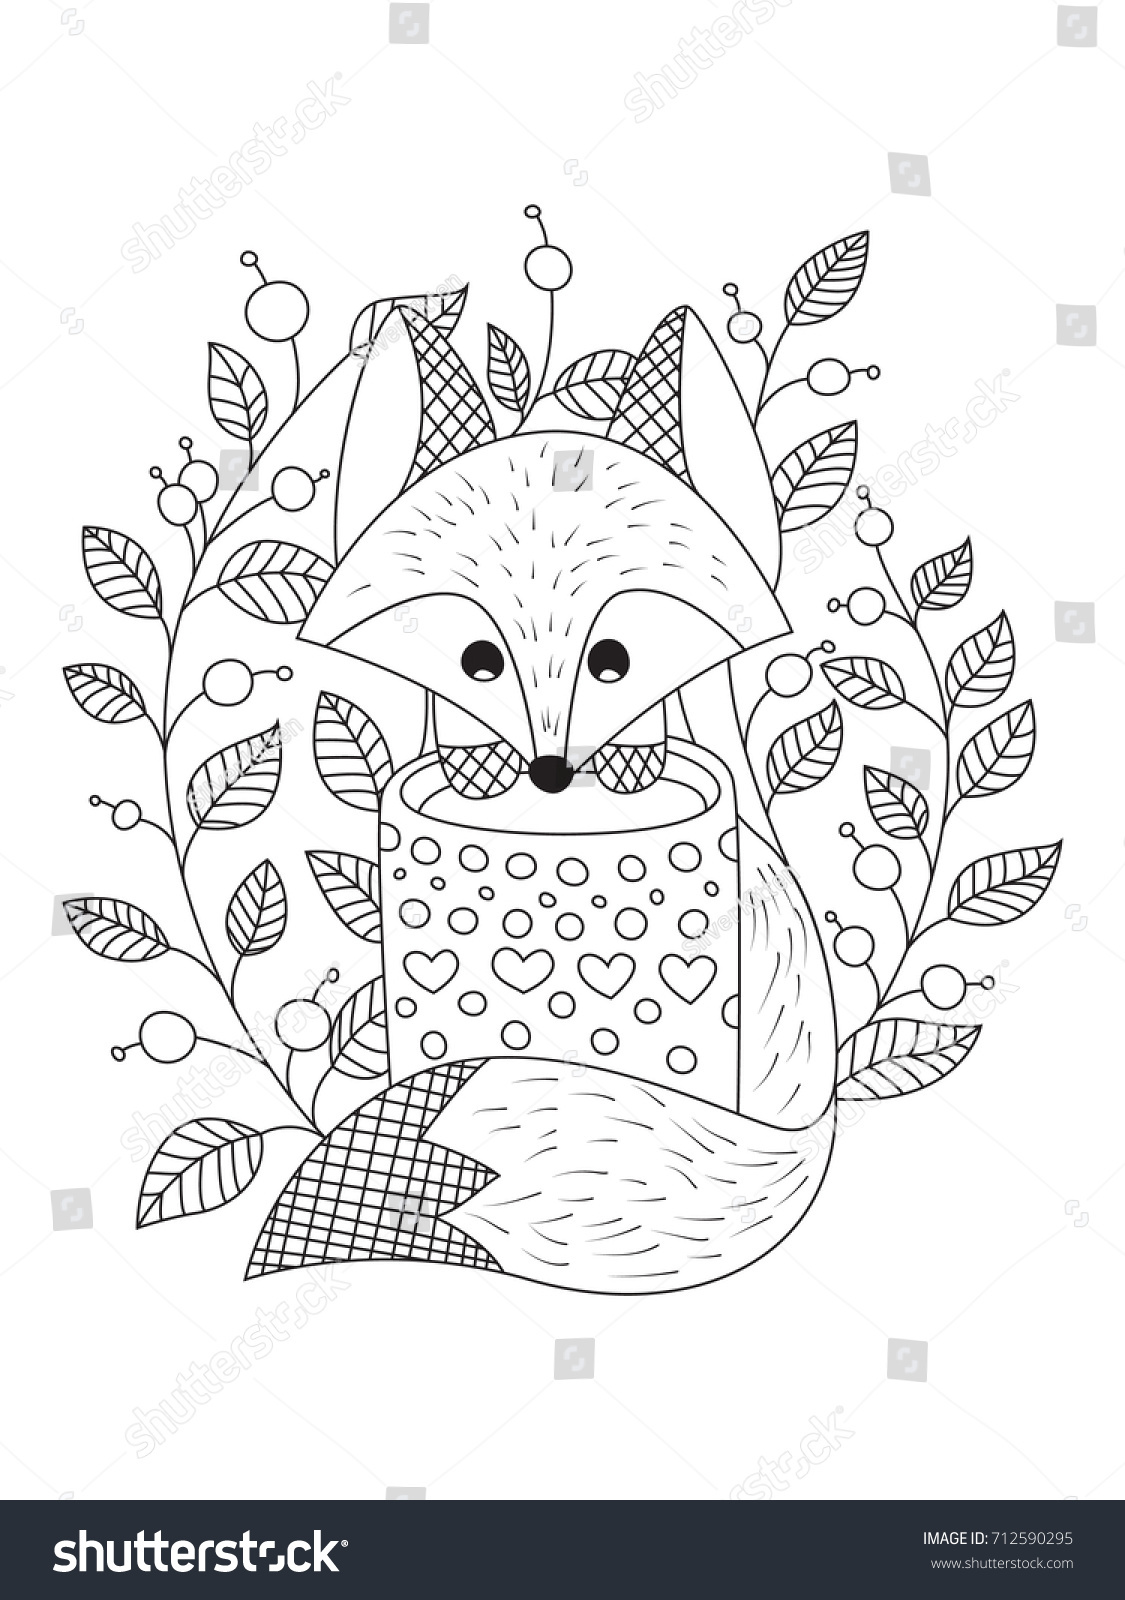 Outlined Doodle Antistress Coloring Book Page Stock Vector ...